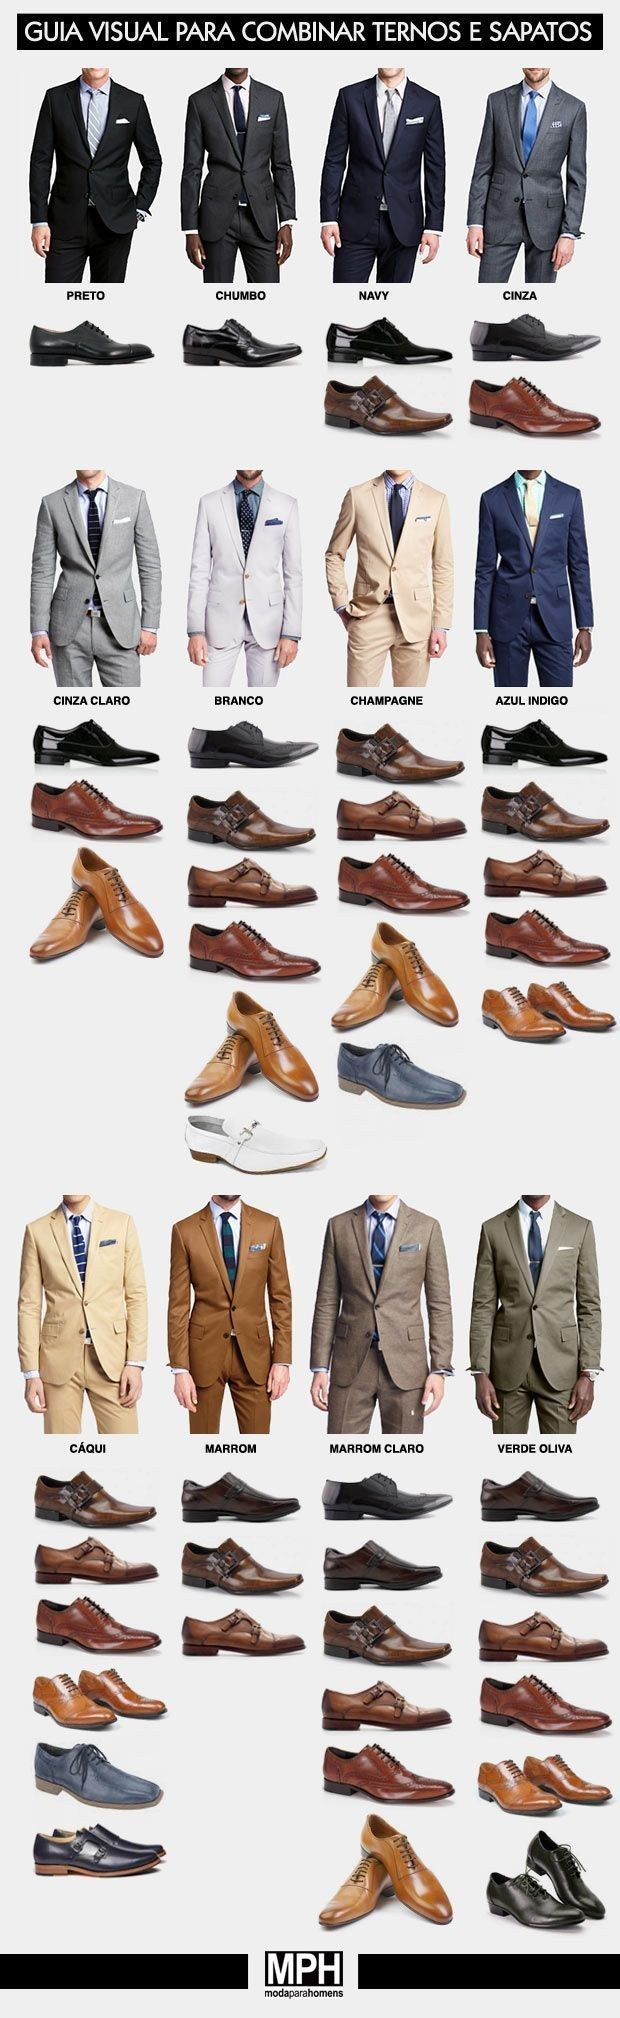 For guys who want to dress well  - Imgur